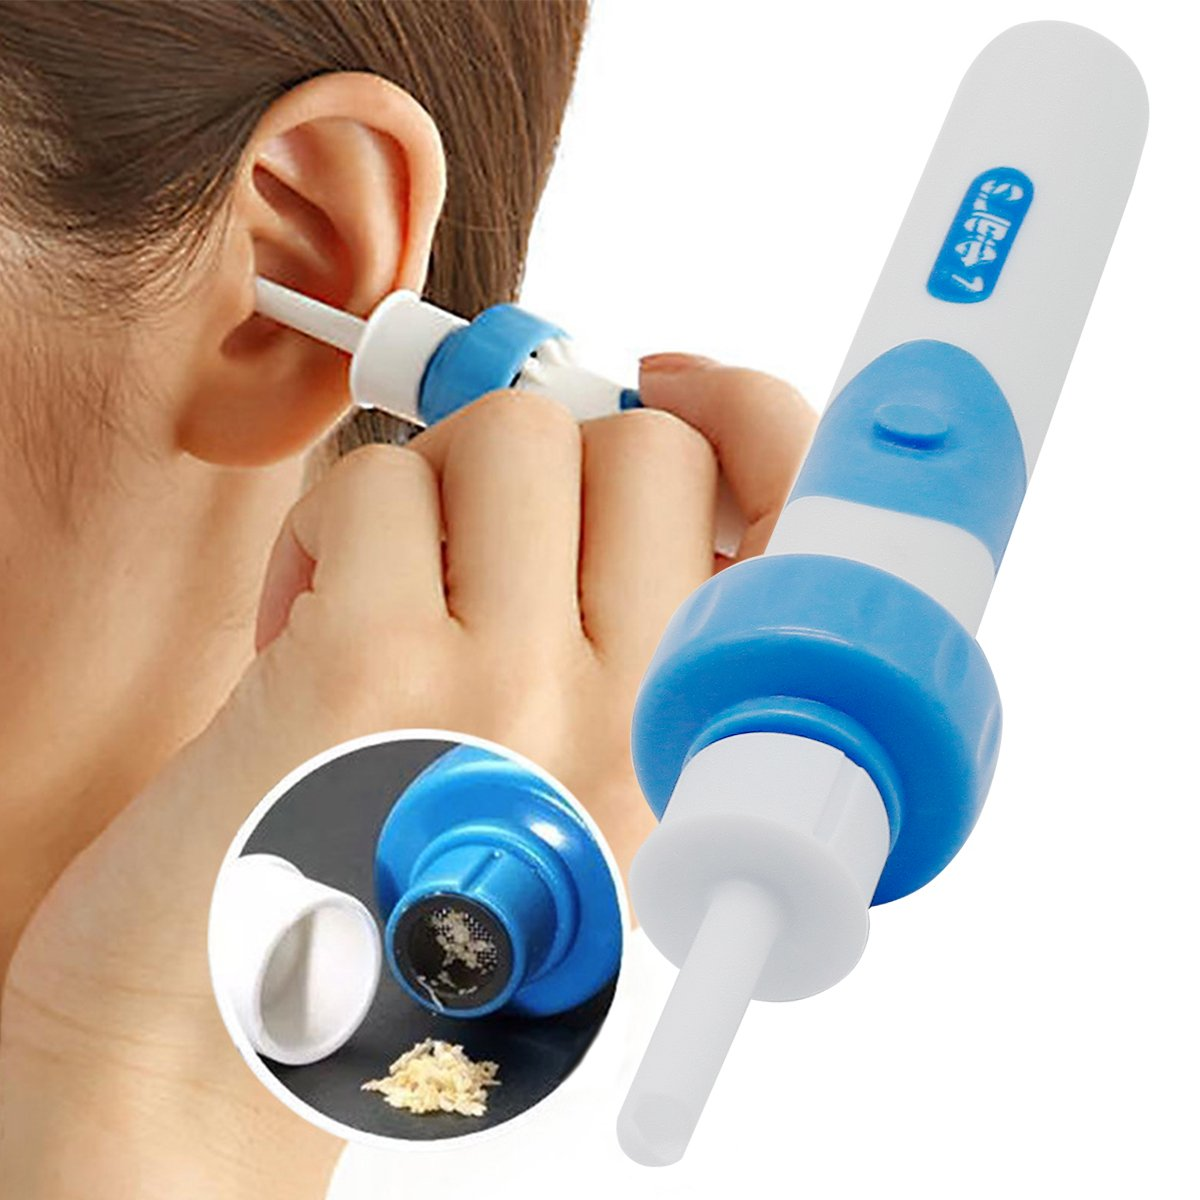 Ear Wax Remover, Ear Cleaner, Ear Wax Cleaner, 2 Removable Silicone Tips for Infants, Babies, Teenagers Adults BUOCEANS